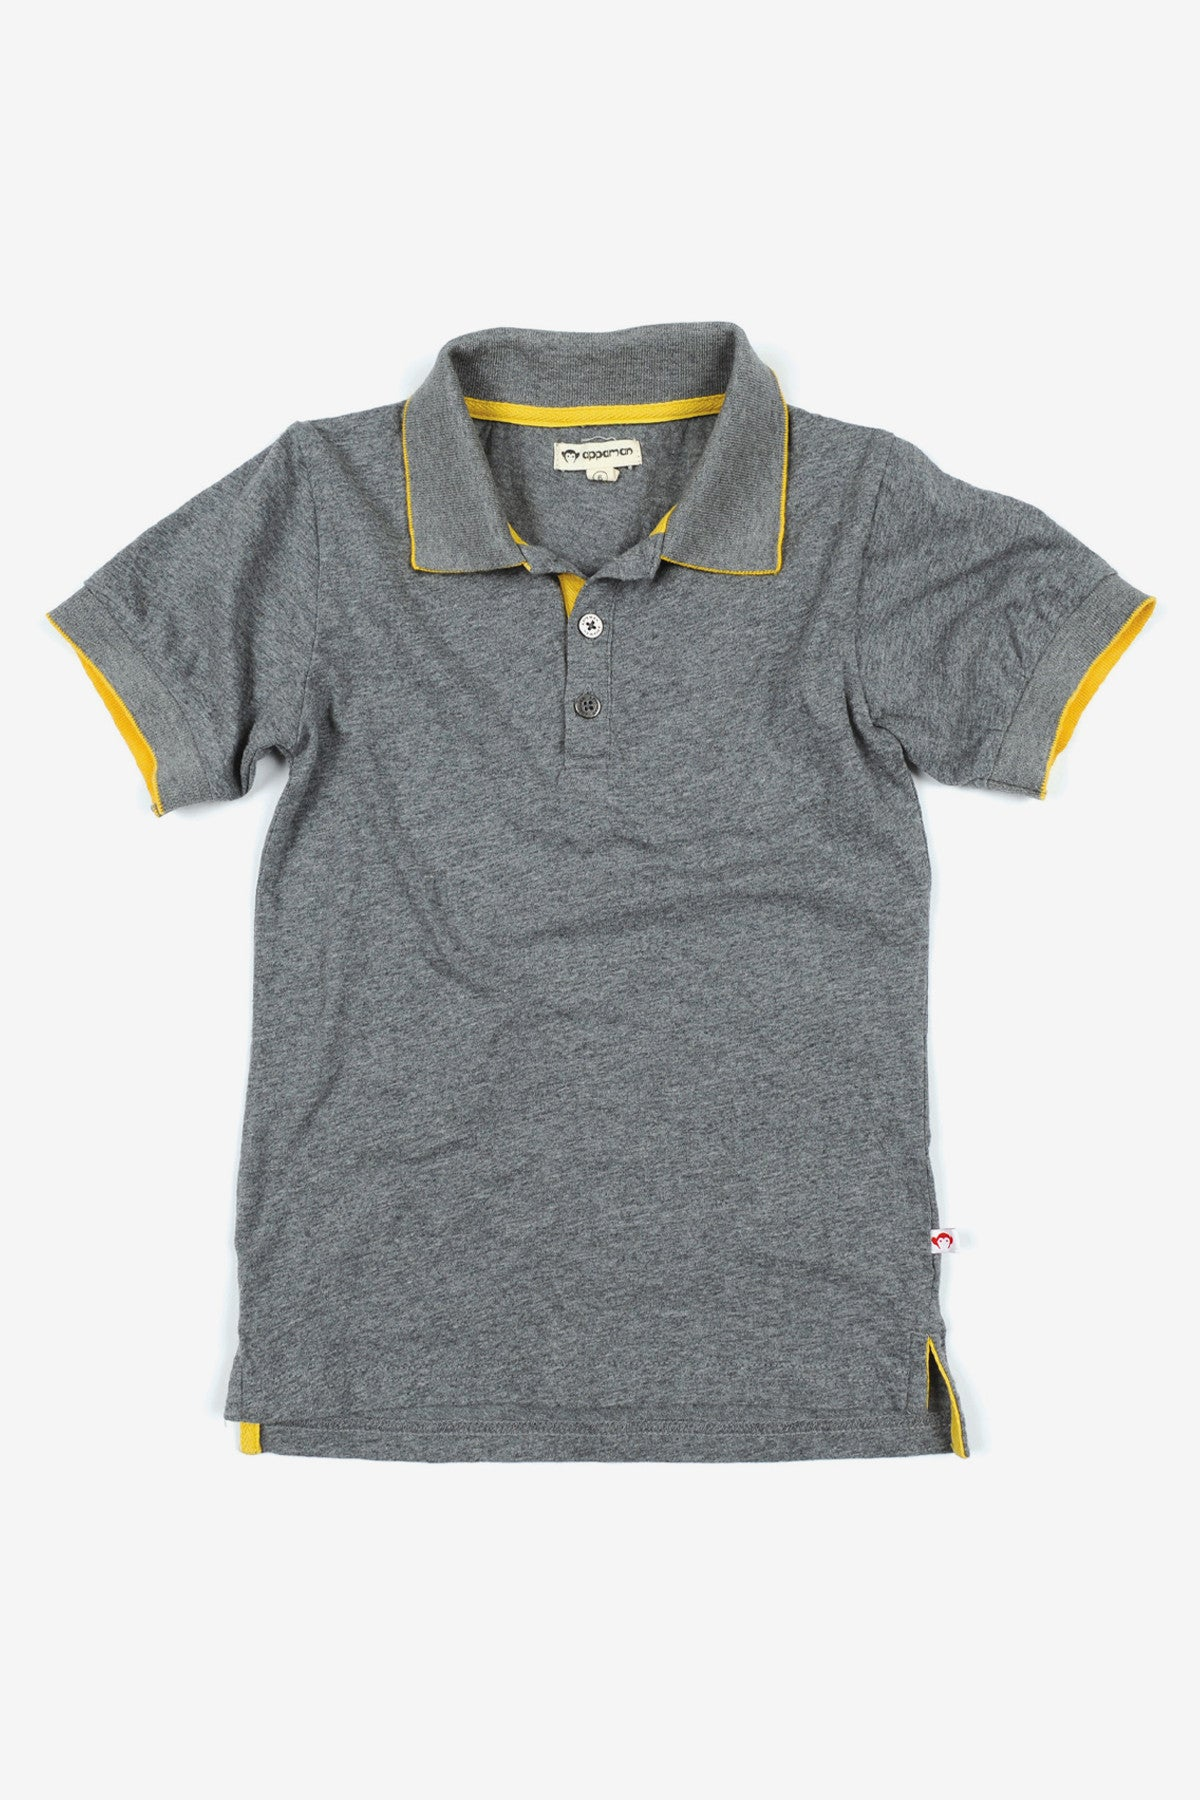 Appaman Relay Polo